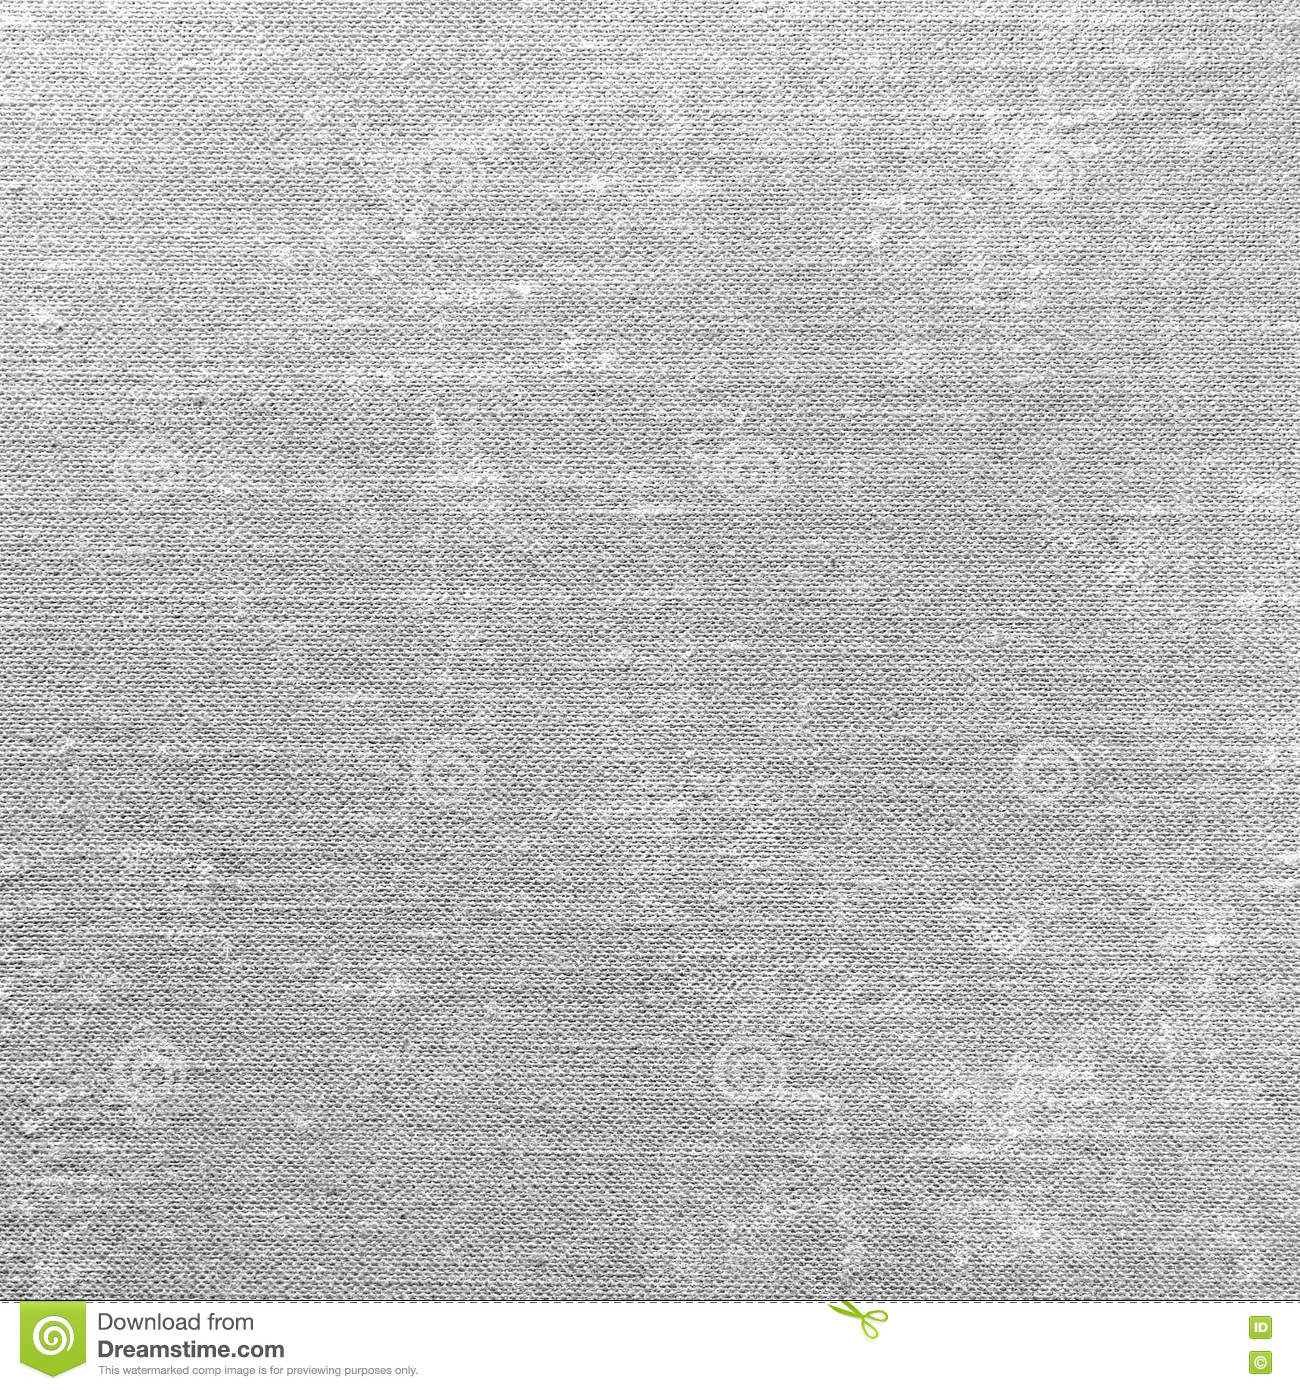 Grey Grunge Linen Texture, teste padrão de Gray Textured Burlap Fabric Background, grande close up macro detalhado